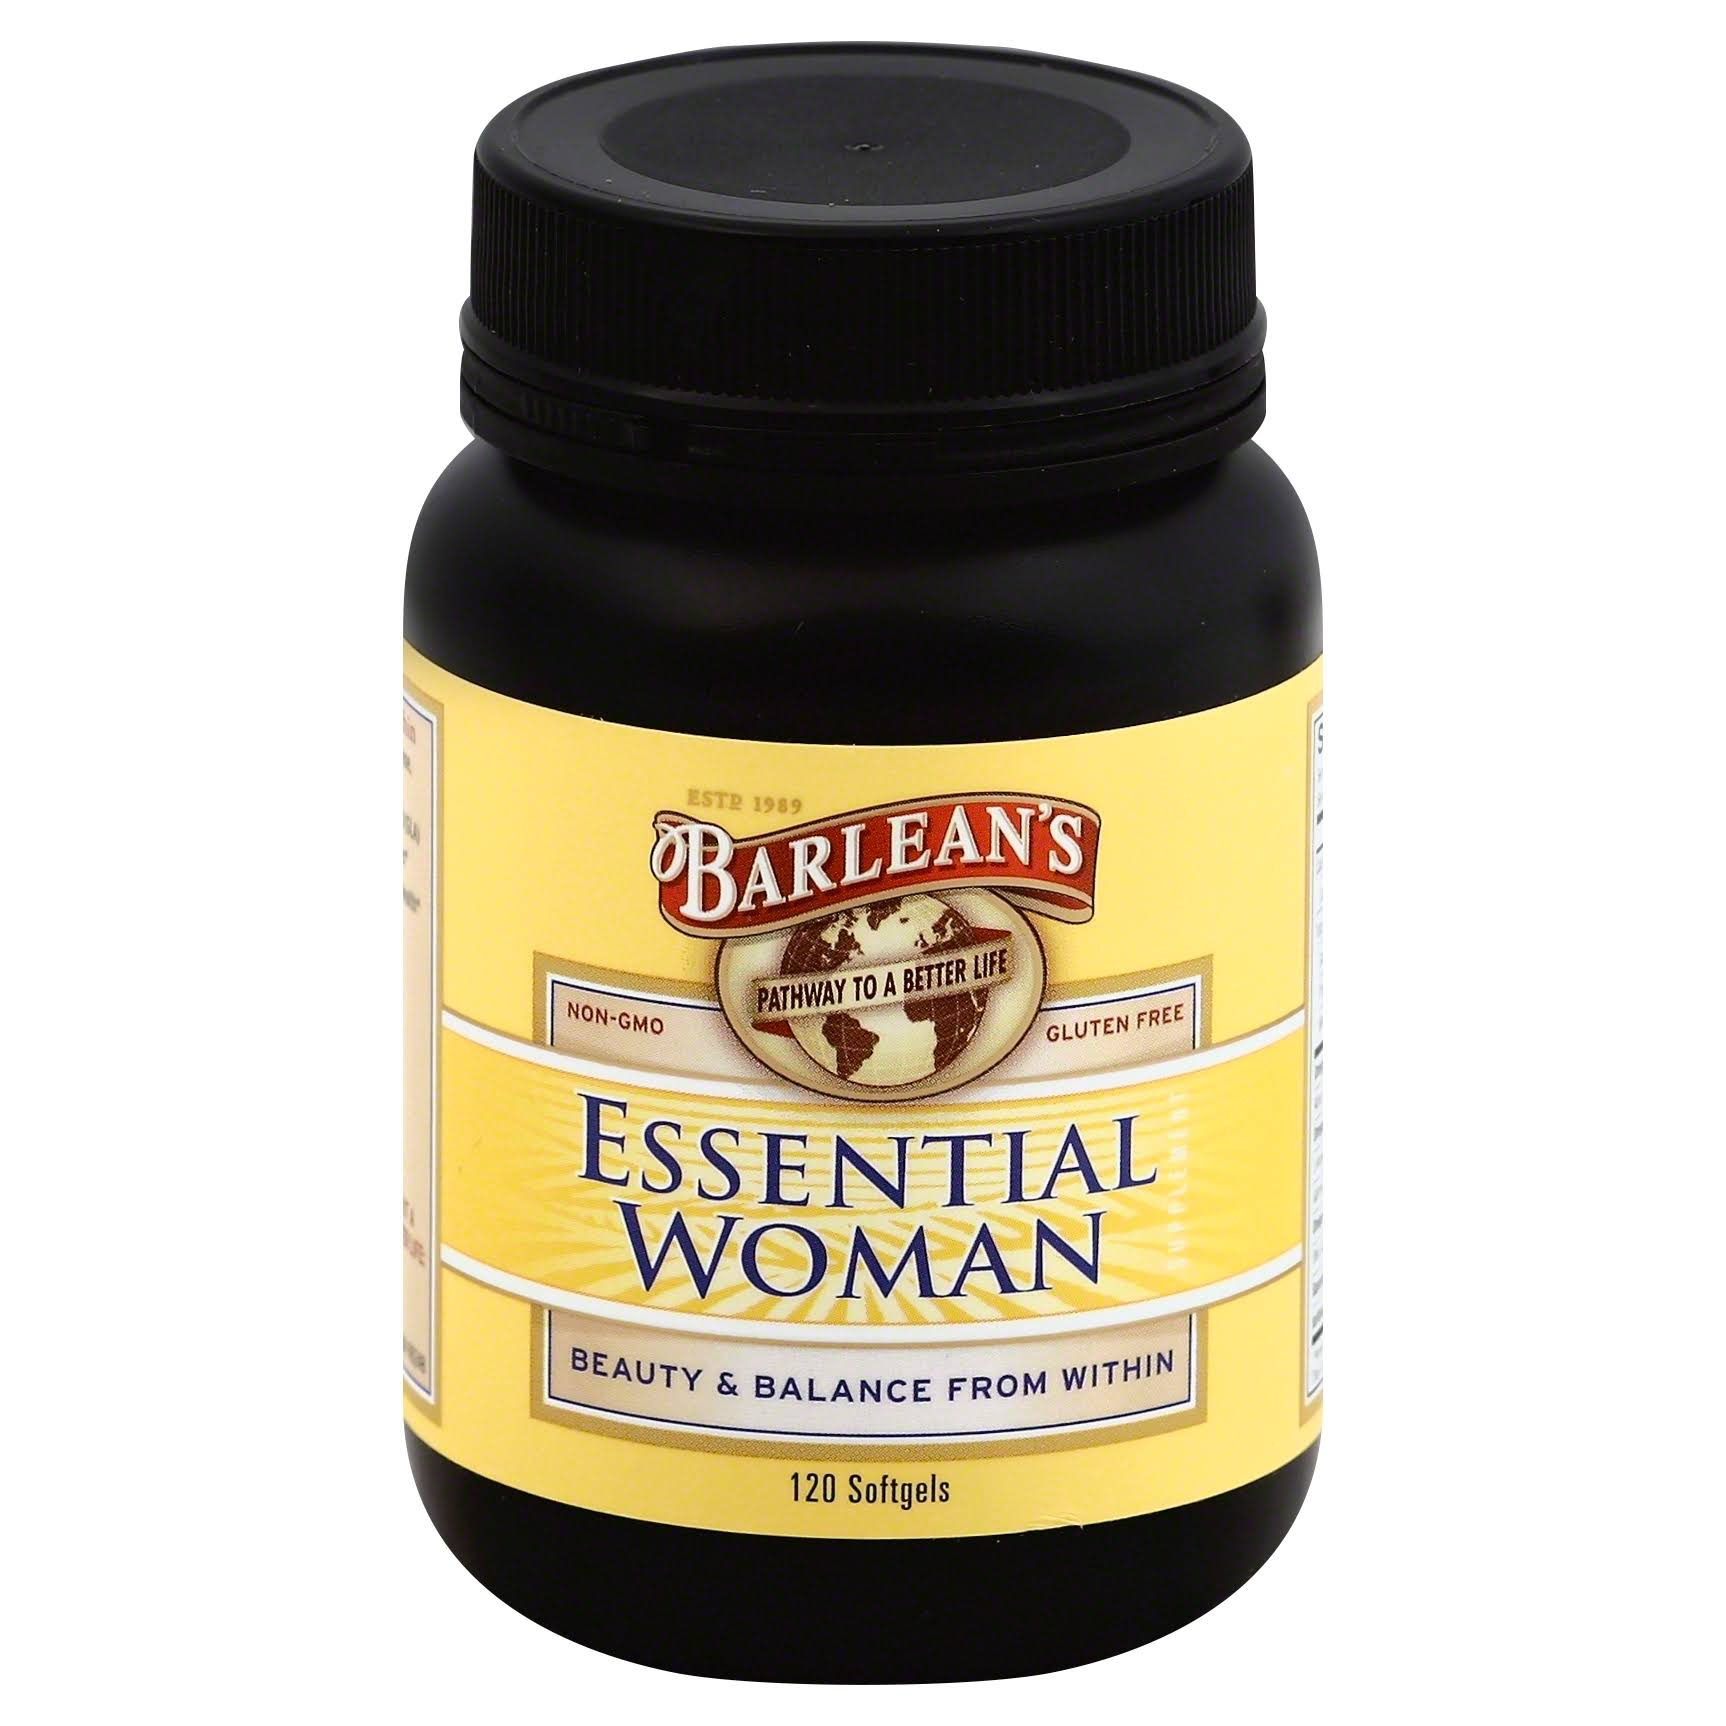 Barlean's The Essential Woman - 1000 mg, 120 softgels